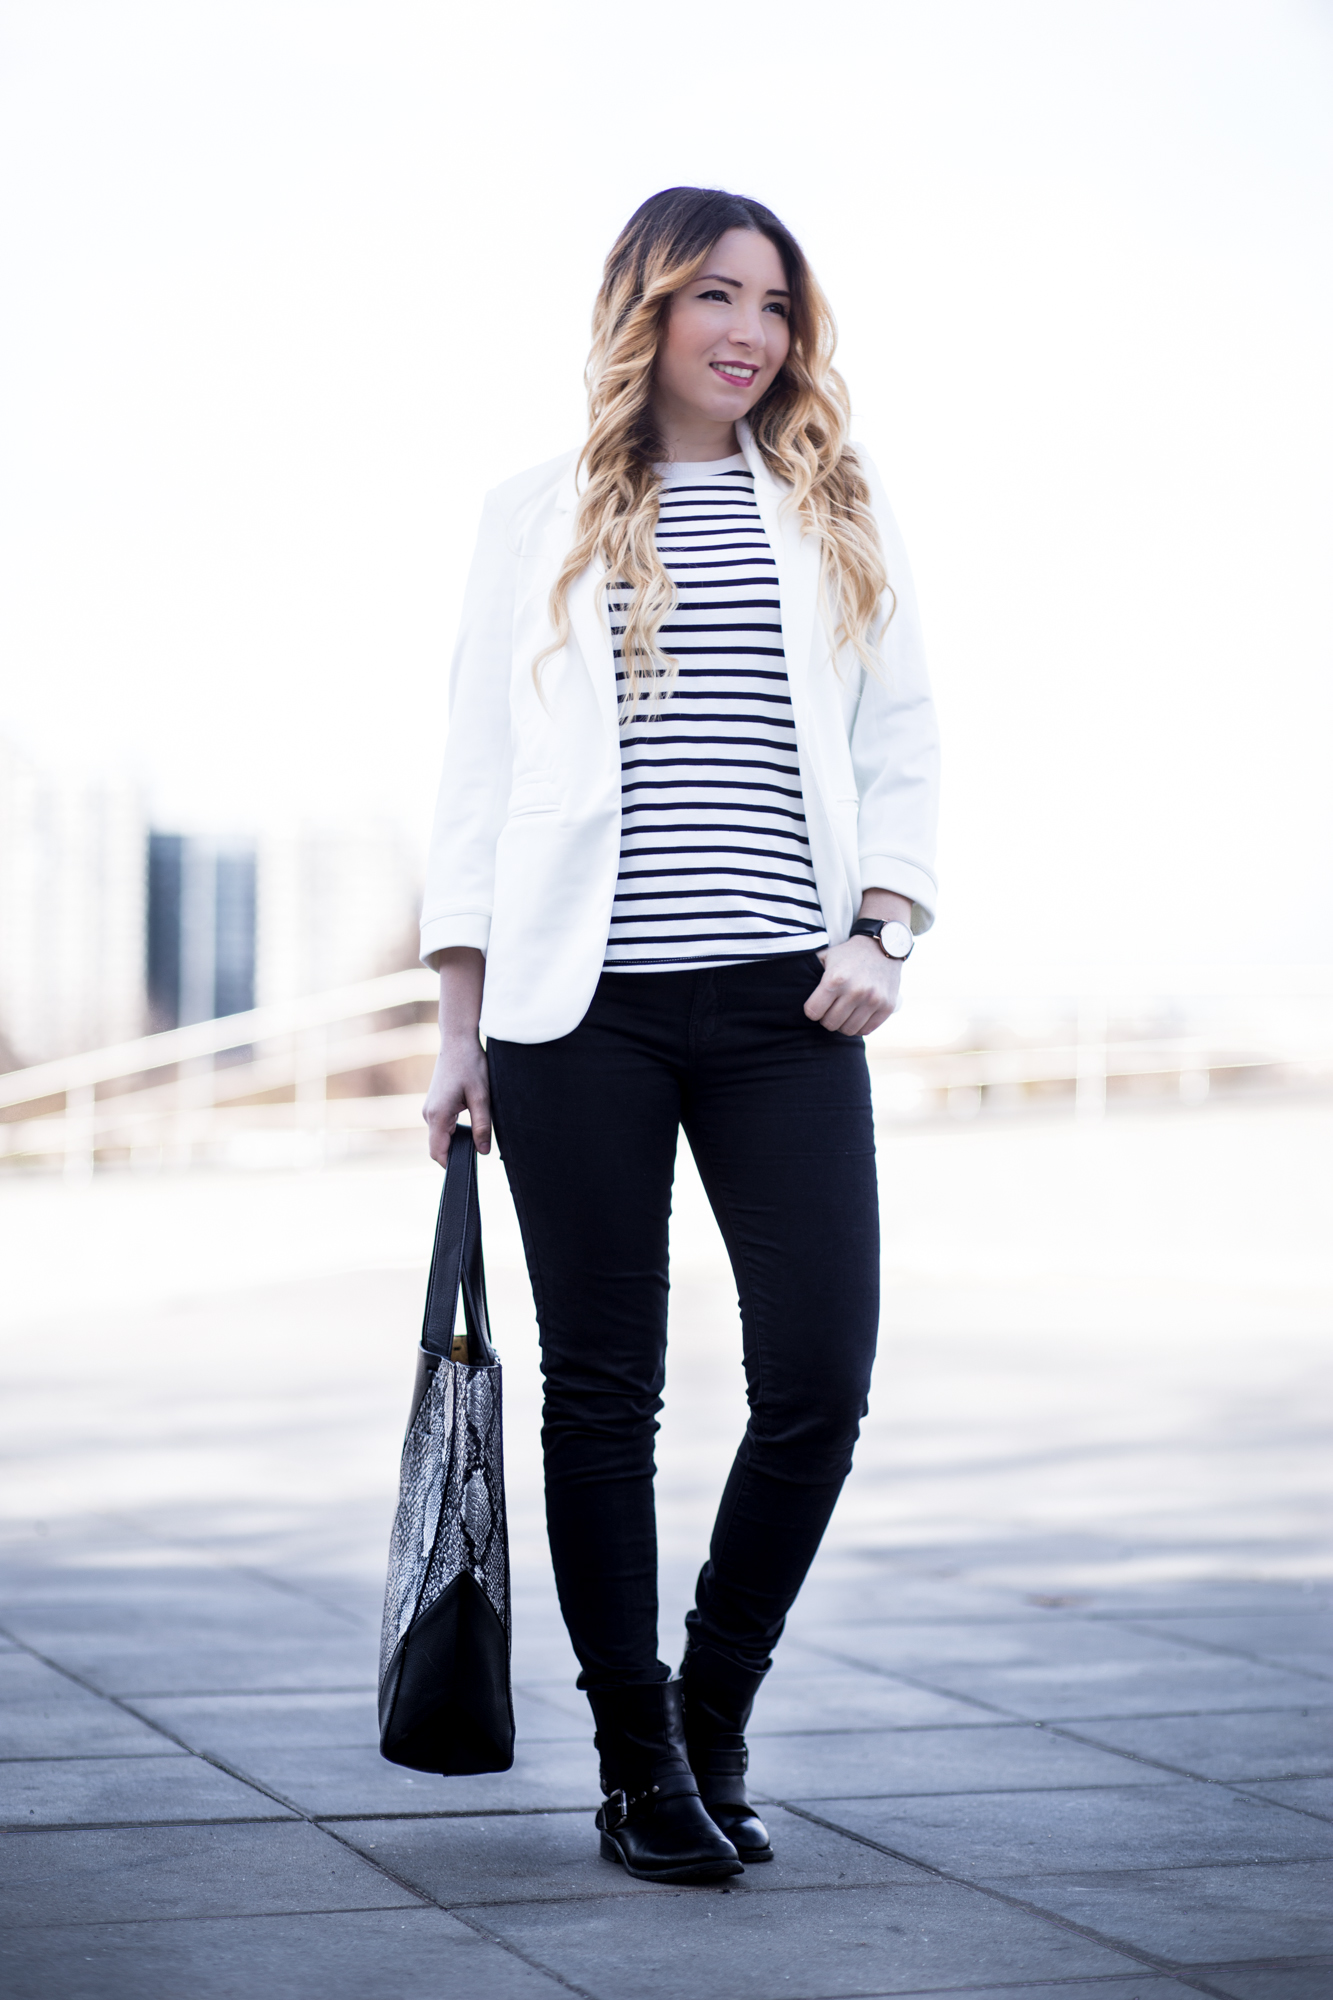 Street style: classic combo black and white outfit, white SheIn blazer, white black stripes blouse, black skinny jeans, black biker boots, snake print bag, daniel wellington watch